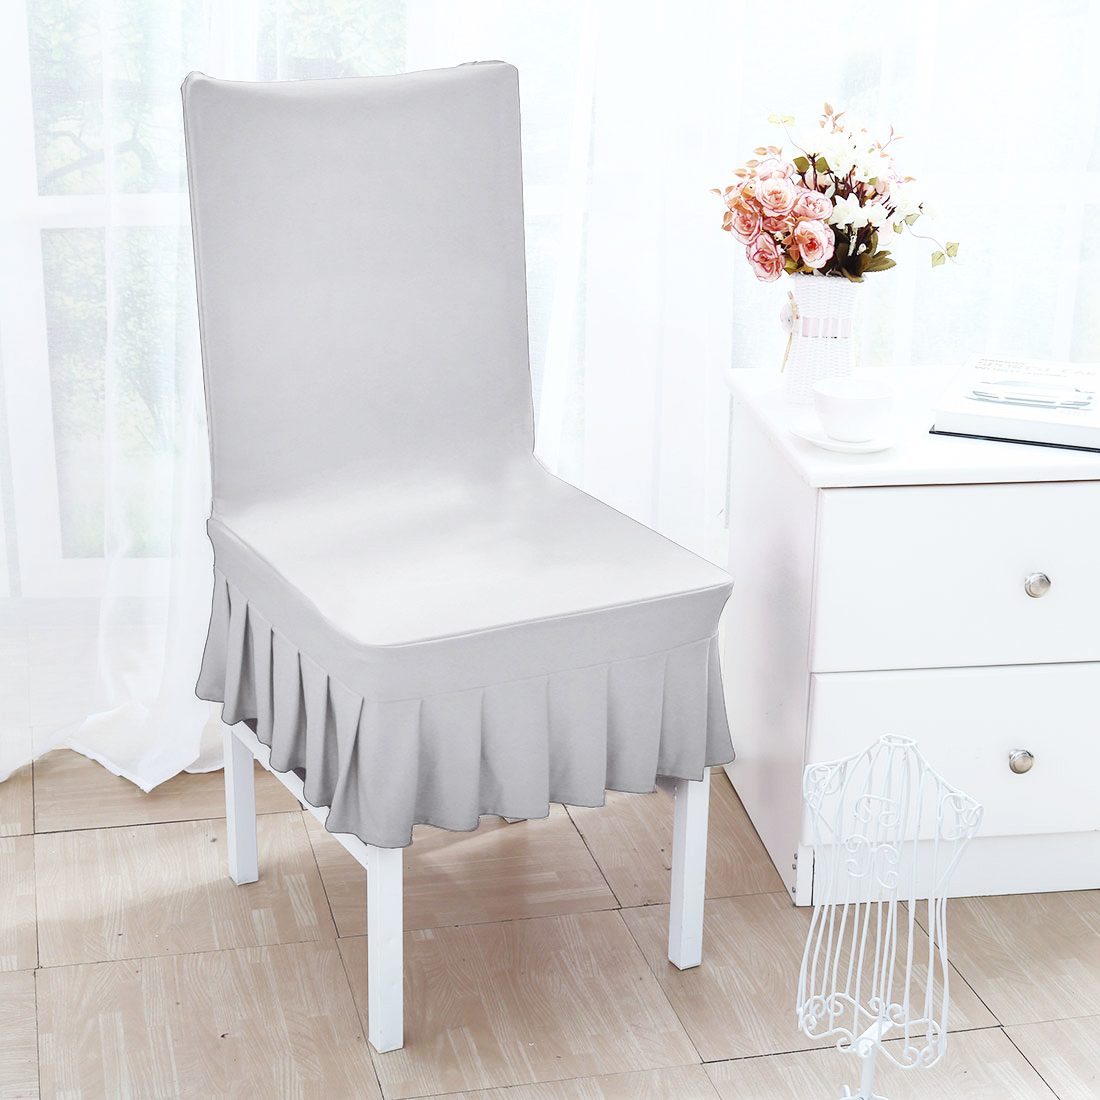 Stretchy Spandex Ruffled Skirt Short Dining Room Chair